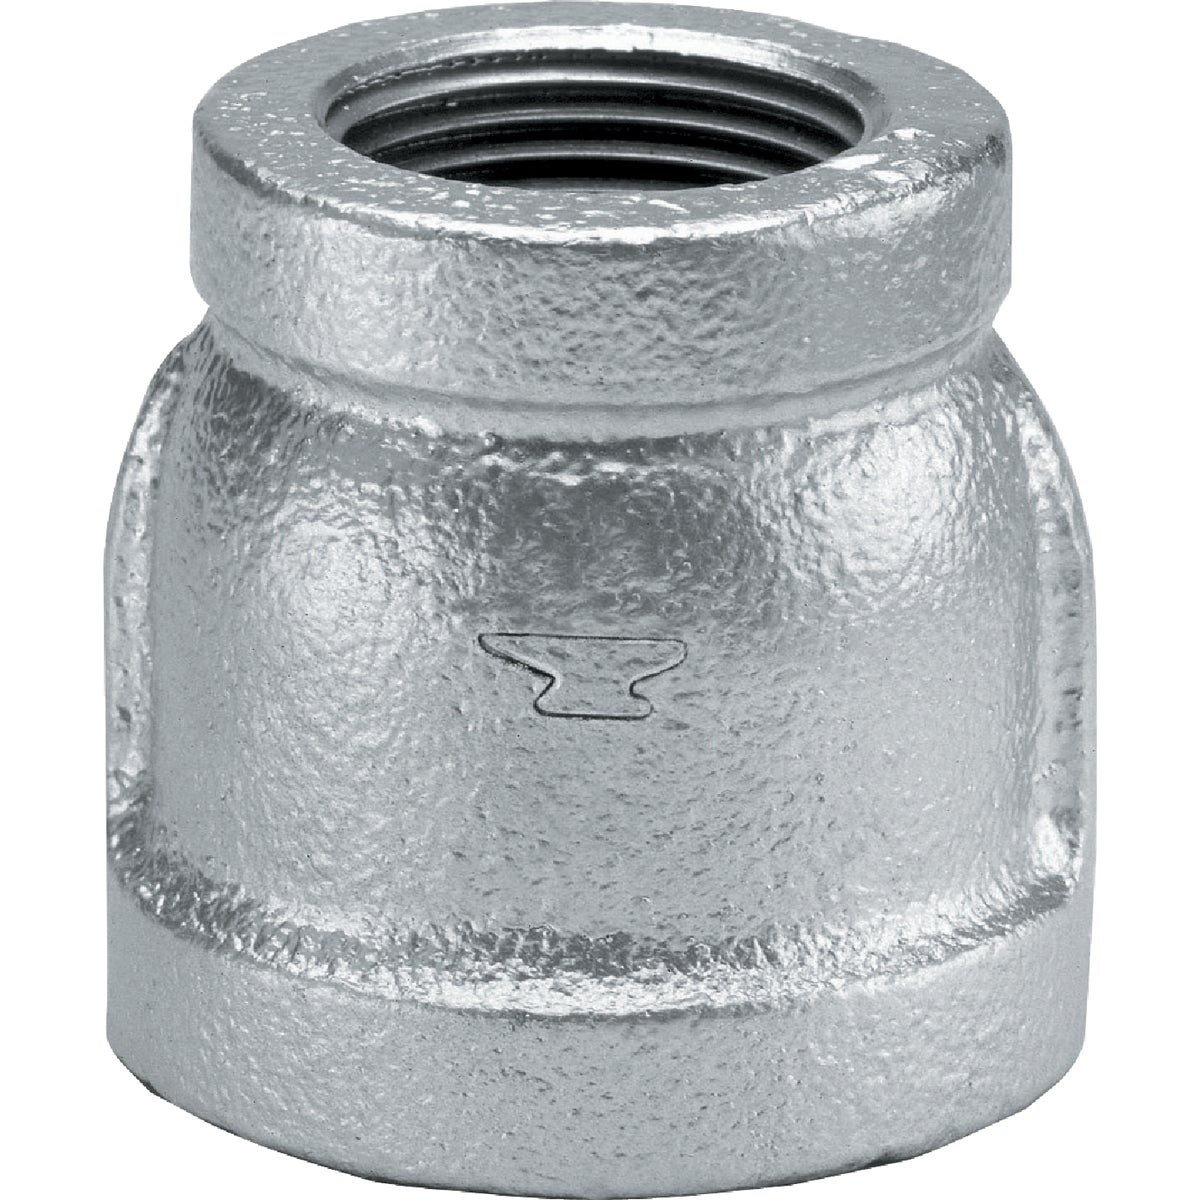 1-1/2X1 GALV COUPLING